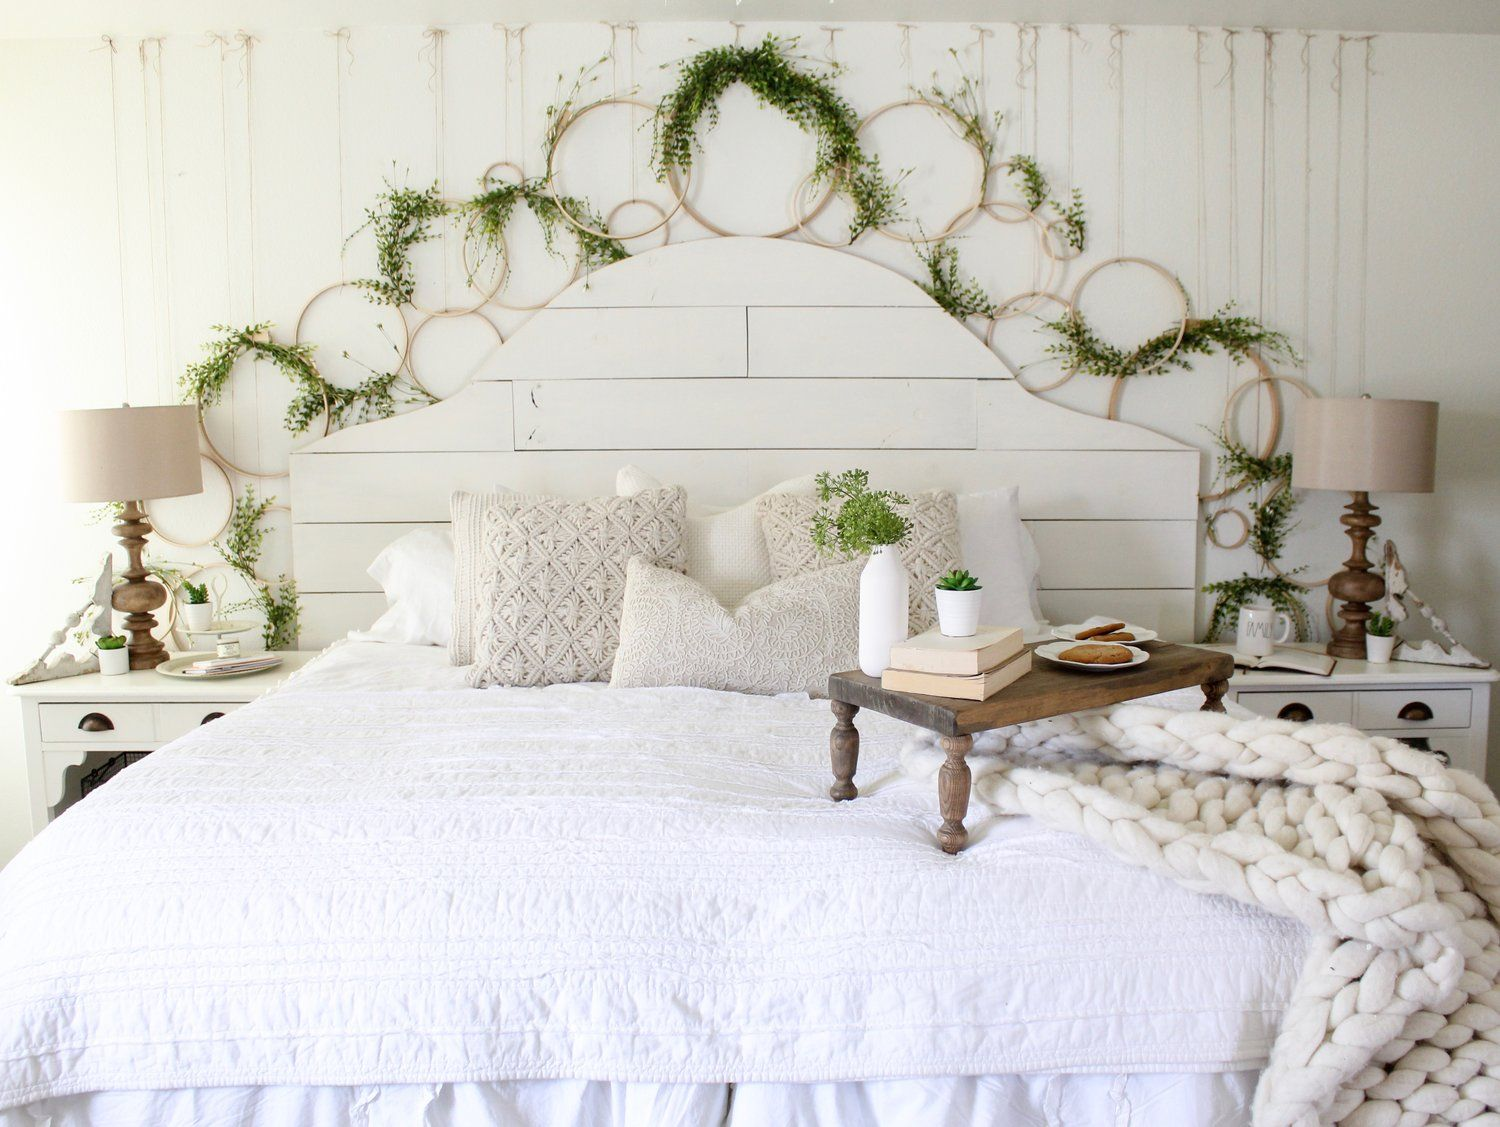 Cotton Stem Blog Farmhouse Bedroom Shiplap Spring Wreath Wall Diy